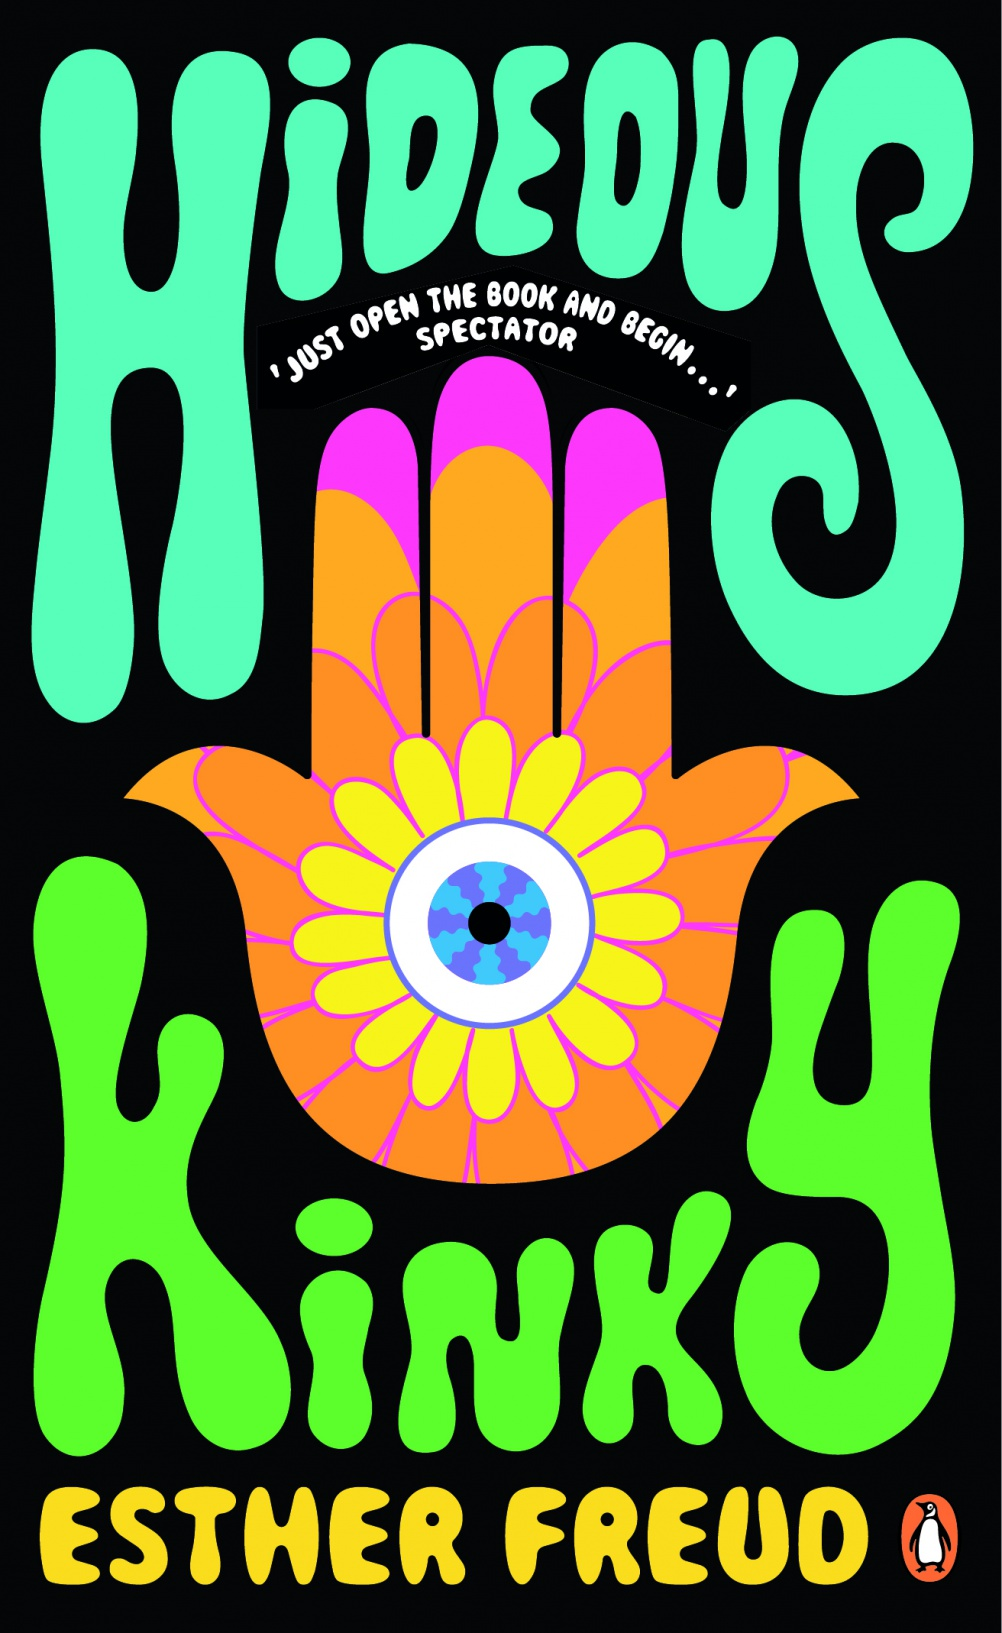 Hideous Kinky by Esther Freud. Cover by Oliver Hibert